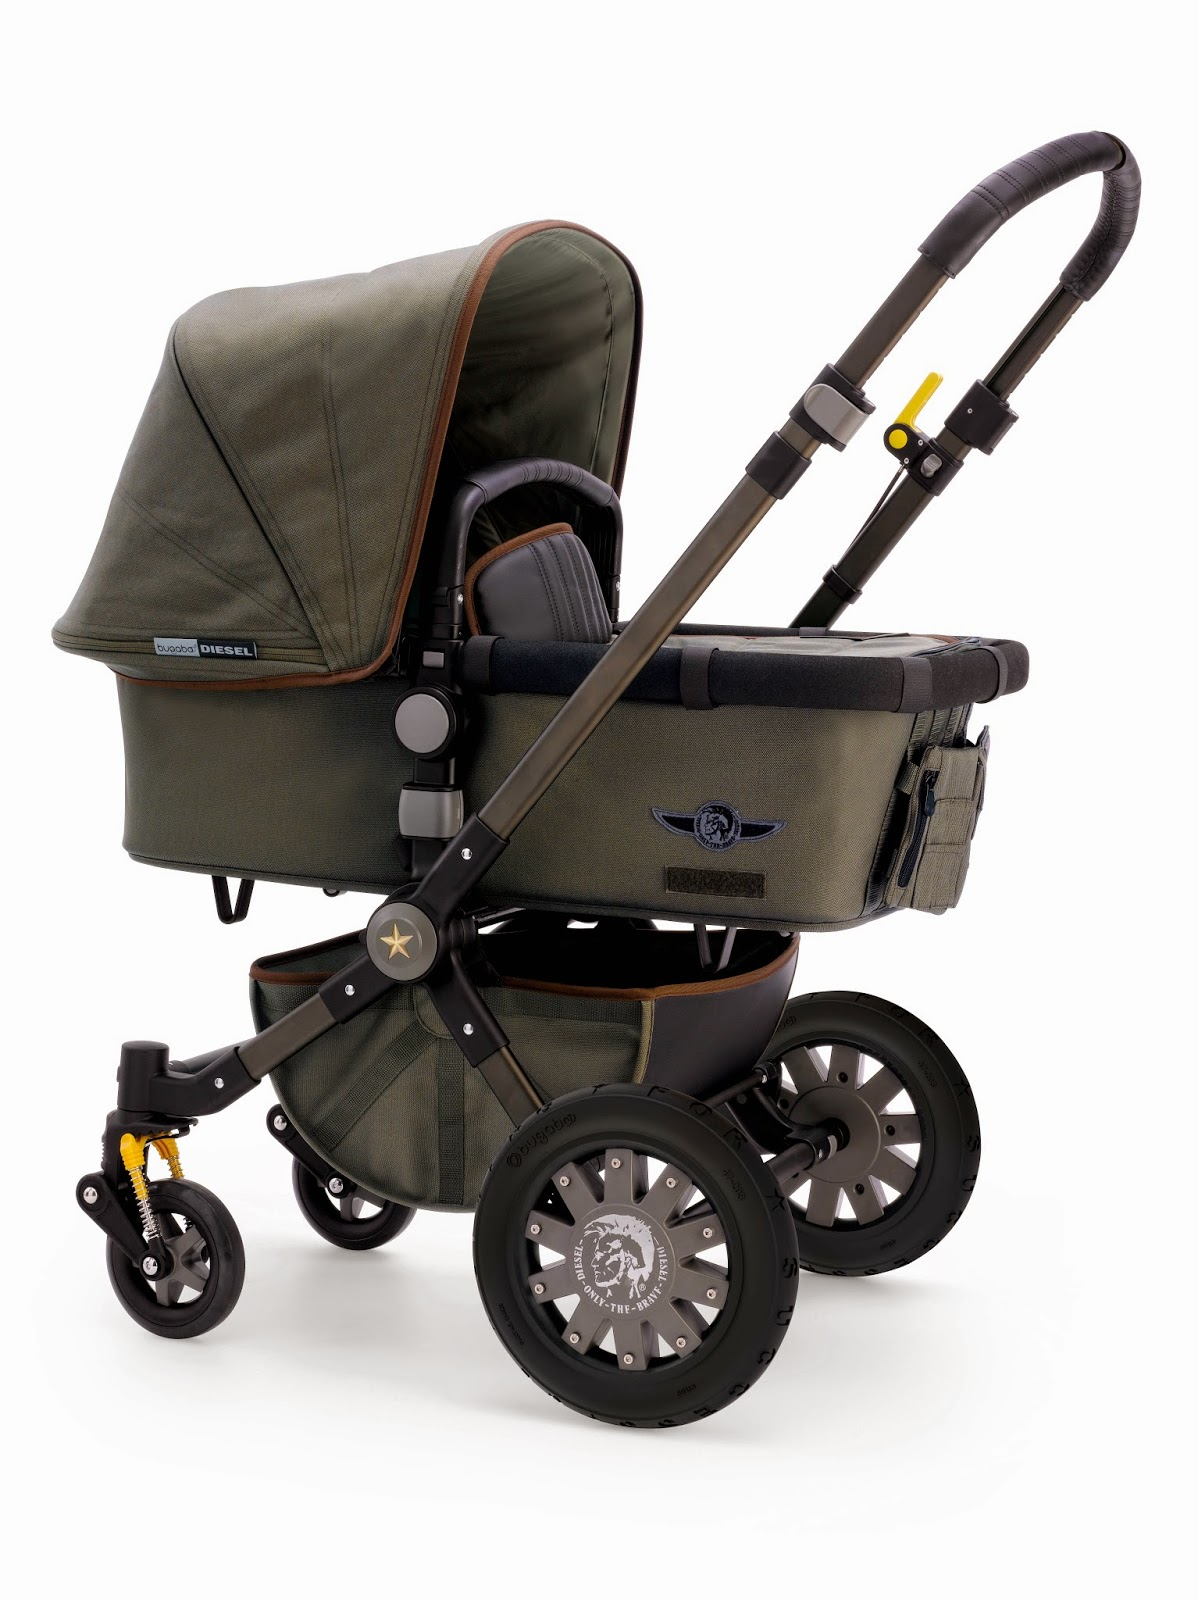 Mothercare Lightweight Pram Looking For Some Fashionable Pram Wheels Here You Go